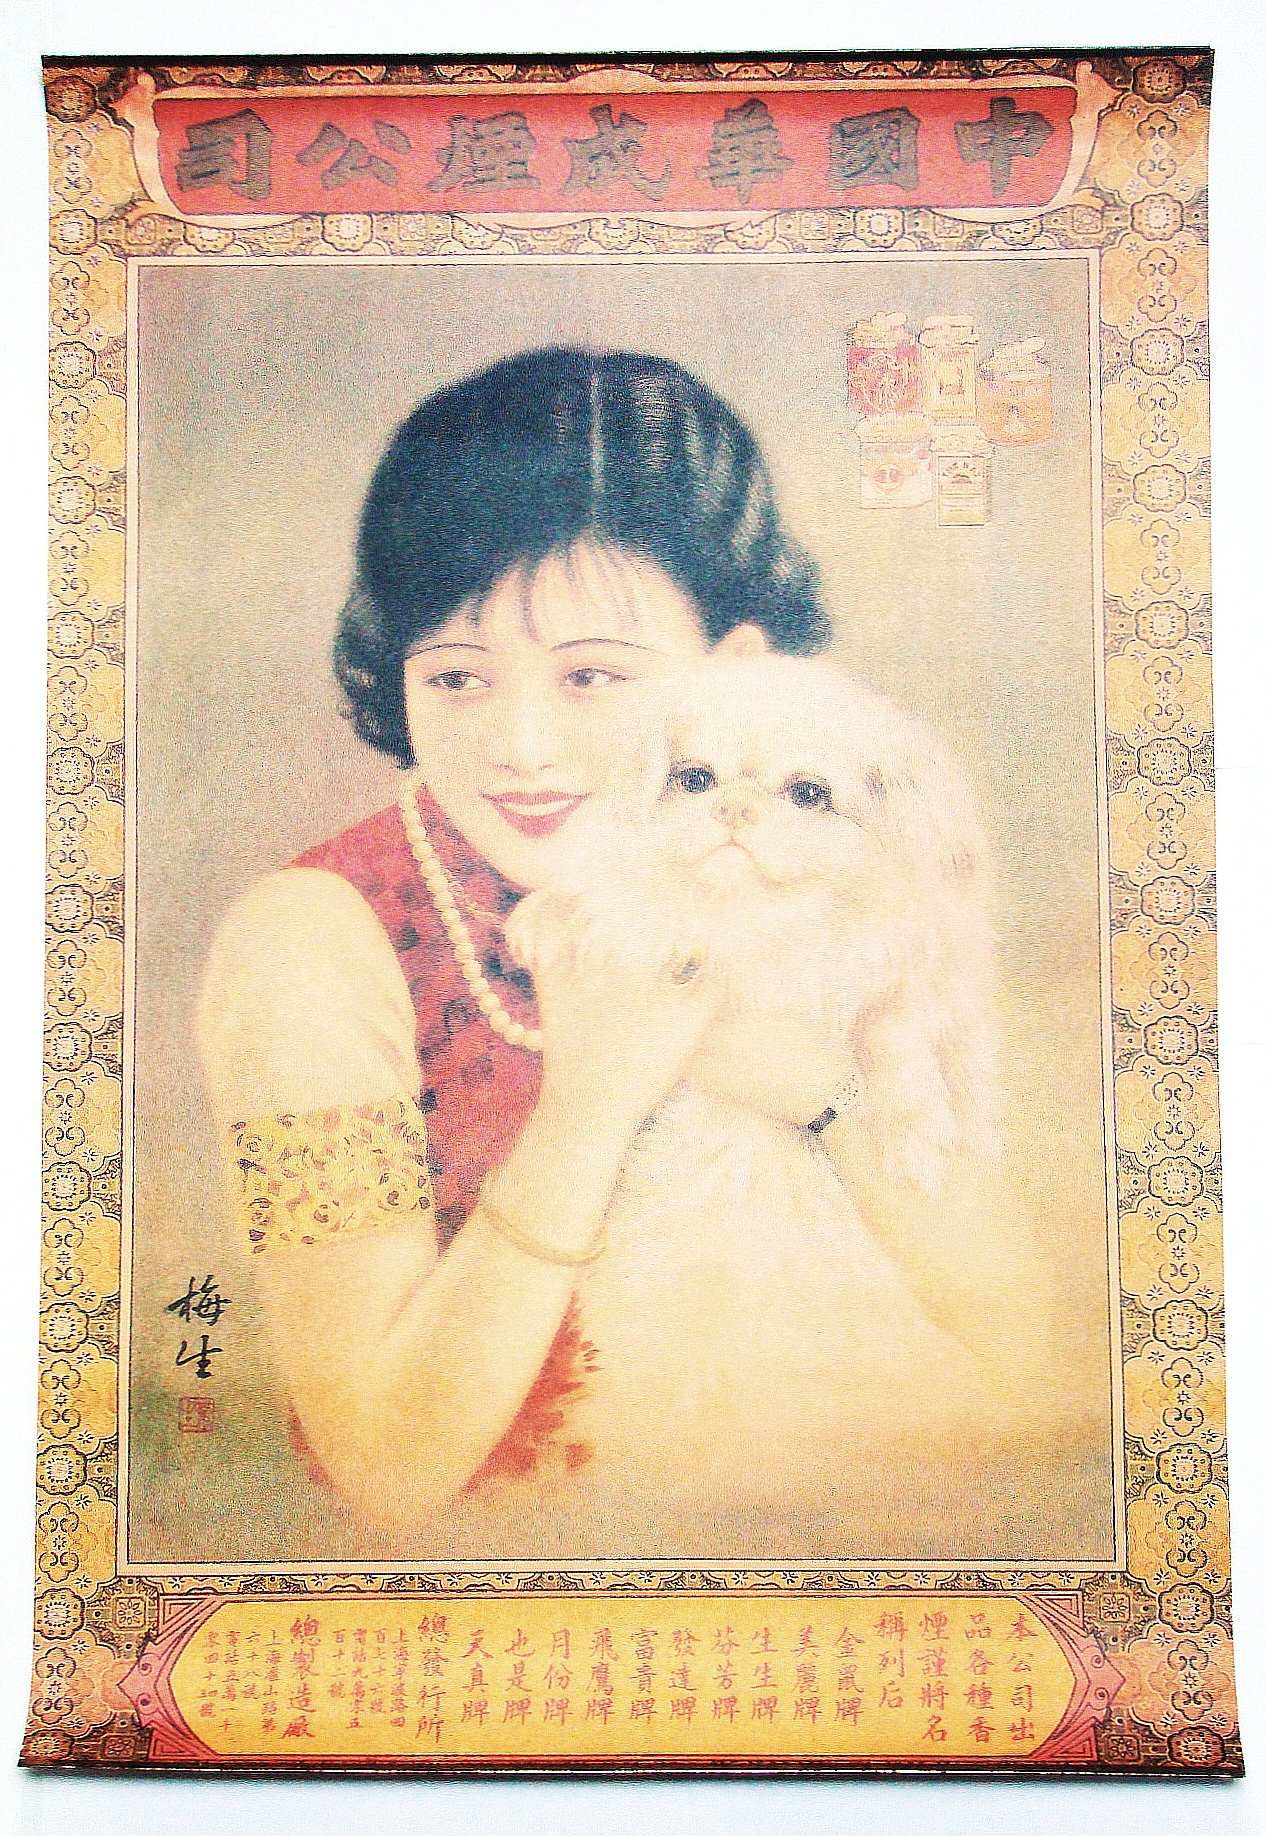 Image for Replica Chinese / Shanghai Cigarette Advertising Poster Featuring Young Lovely in Red-Checked Vest Holding Pekingese Dog - My Dear, The Rat and Calendar Cigarette Brands Illustrated